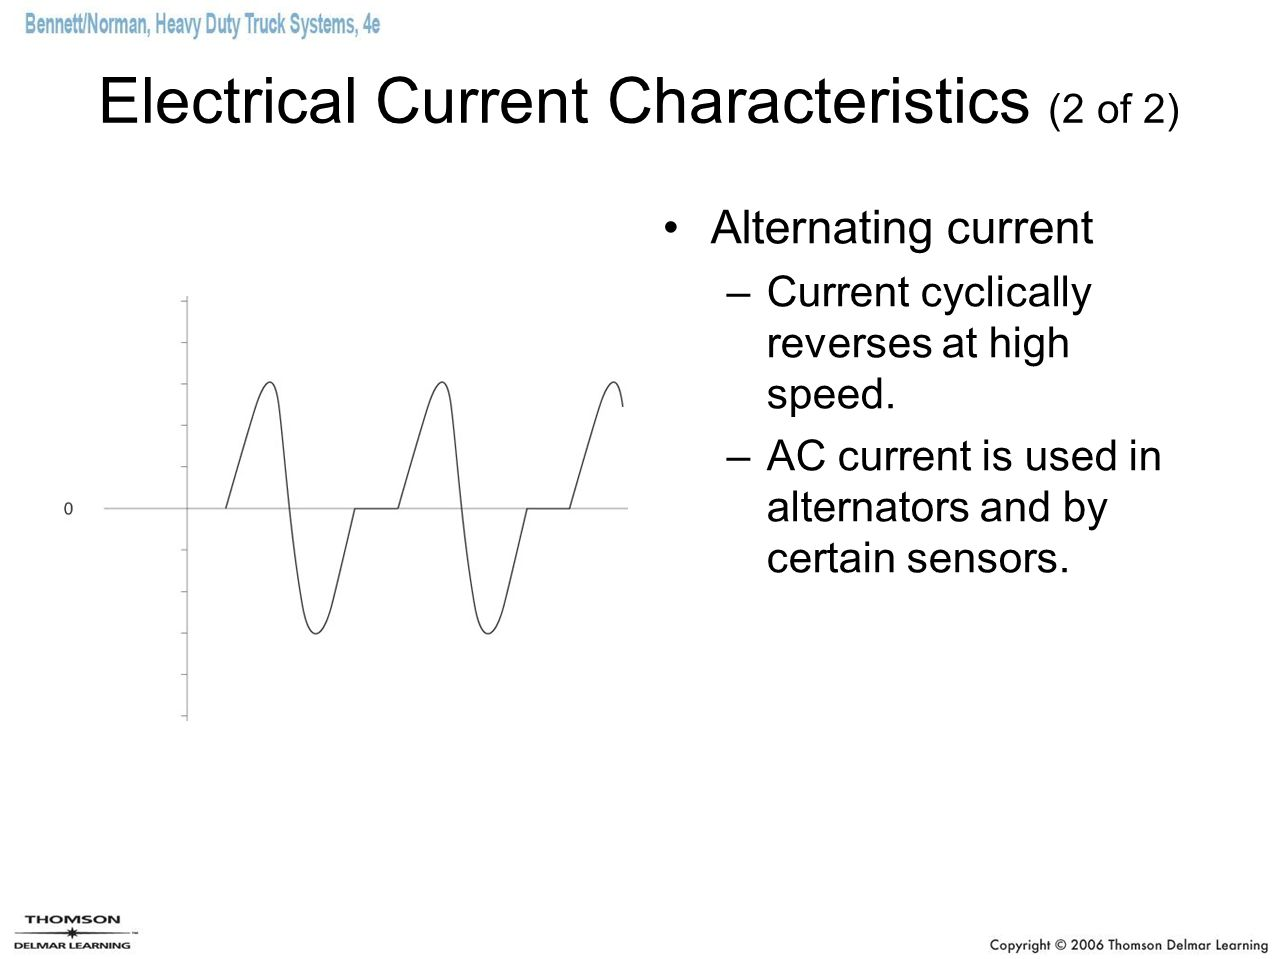 Electrical Current Characteristics (2 of 2)